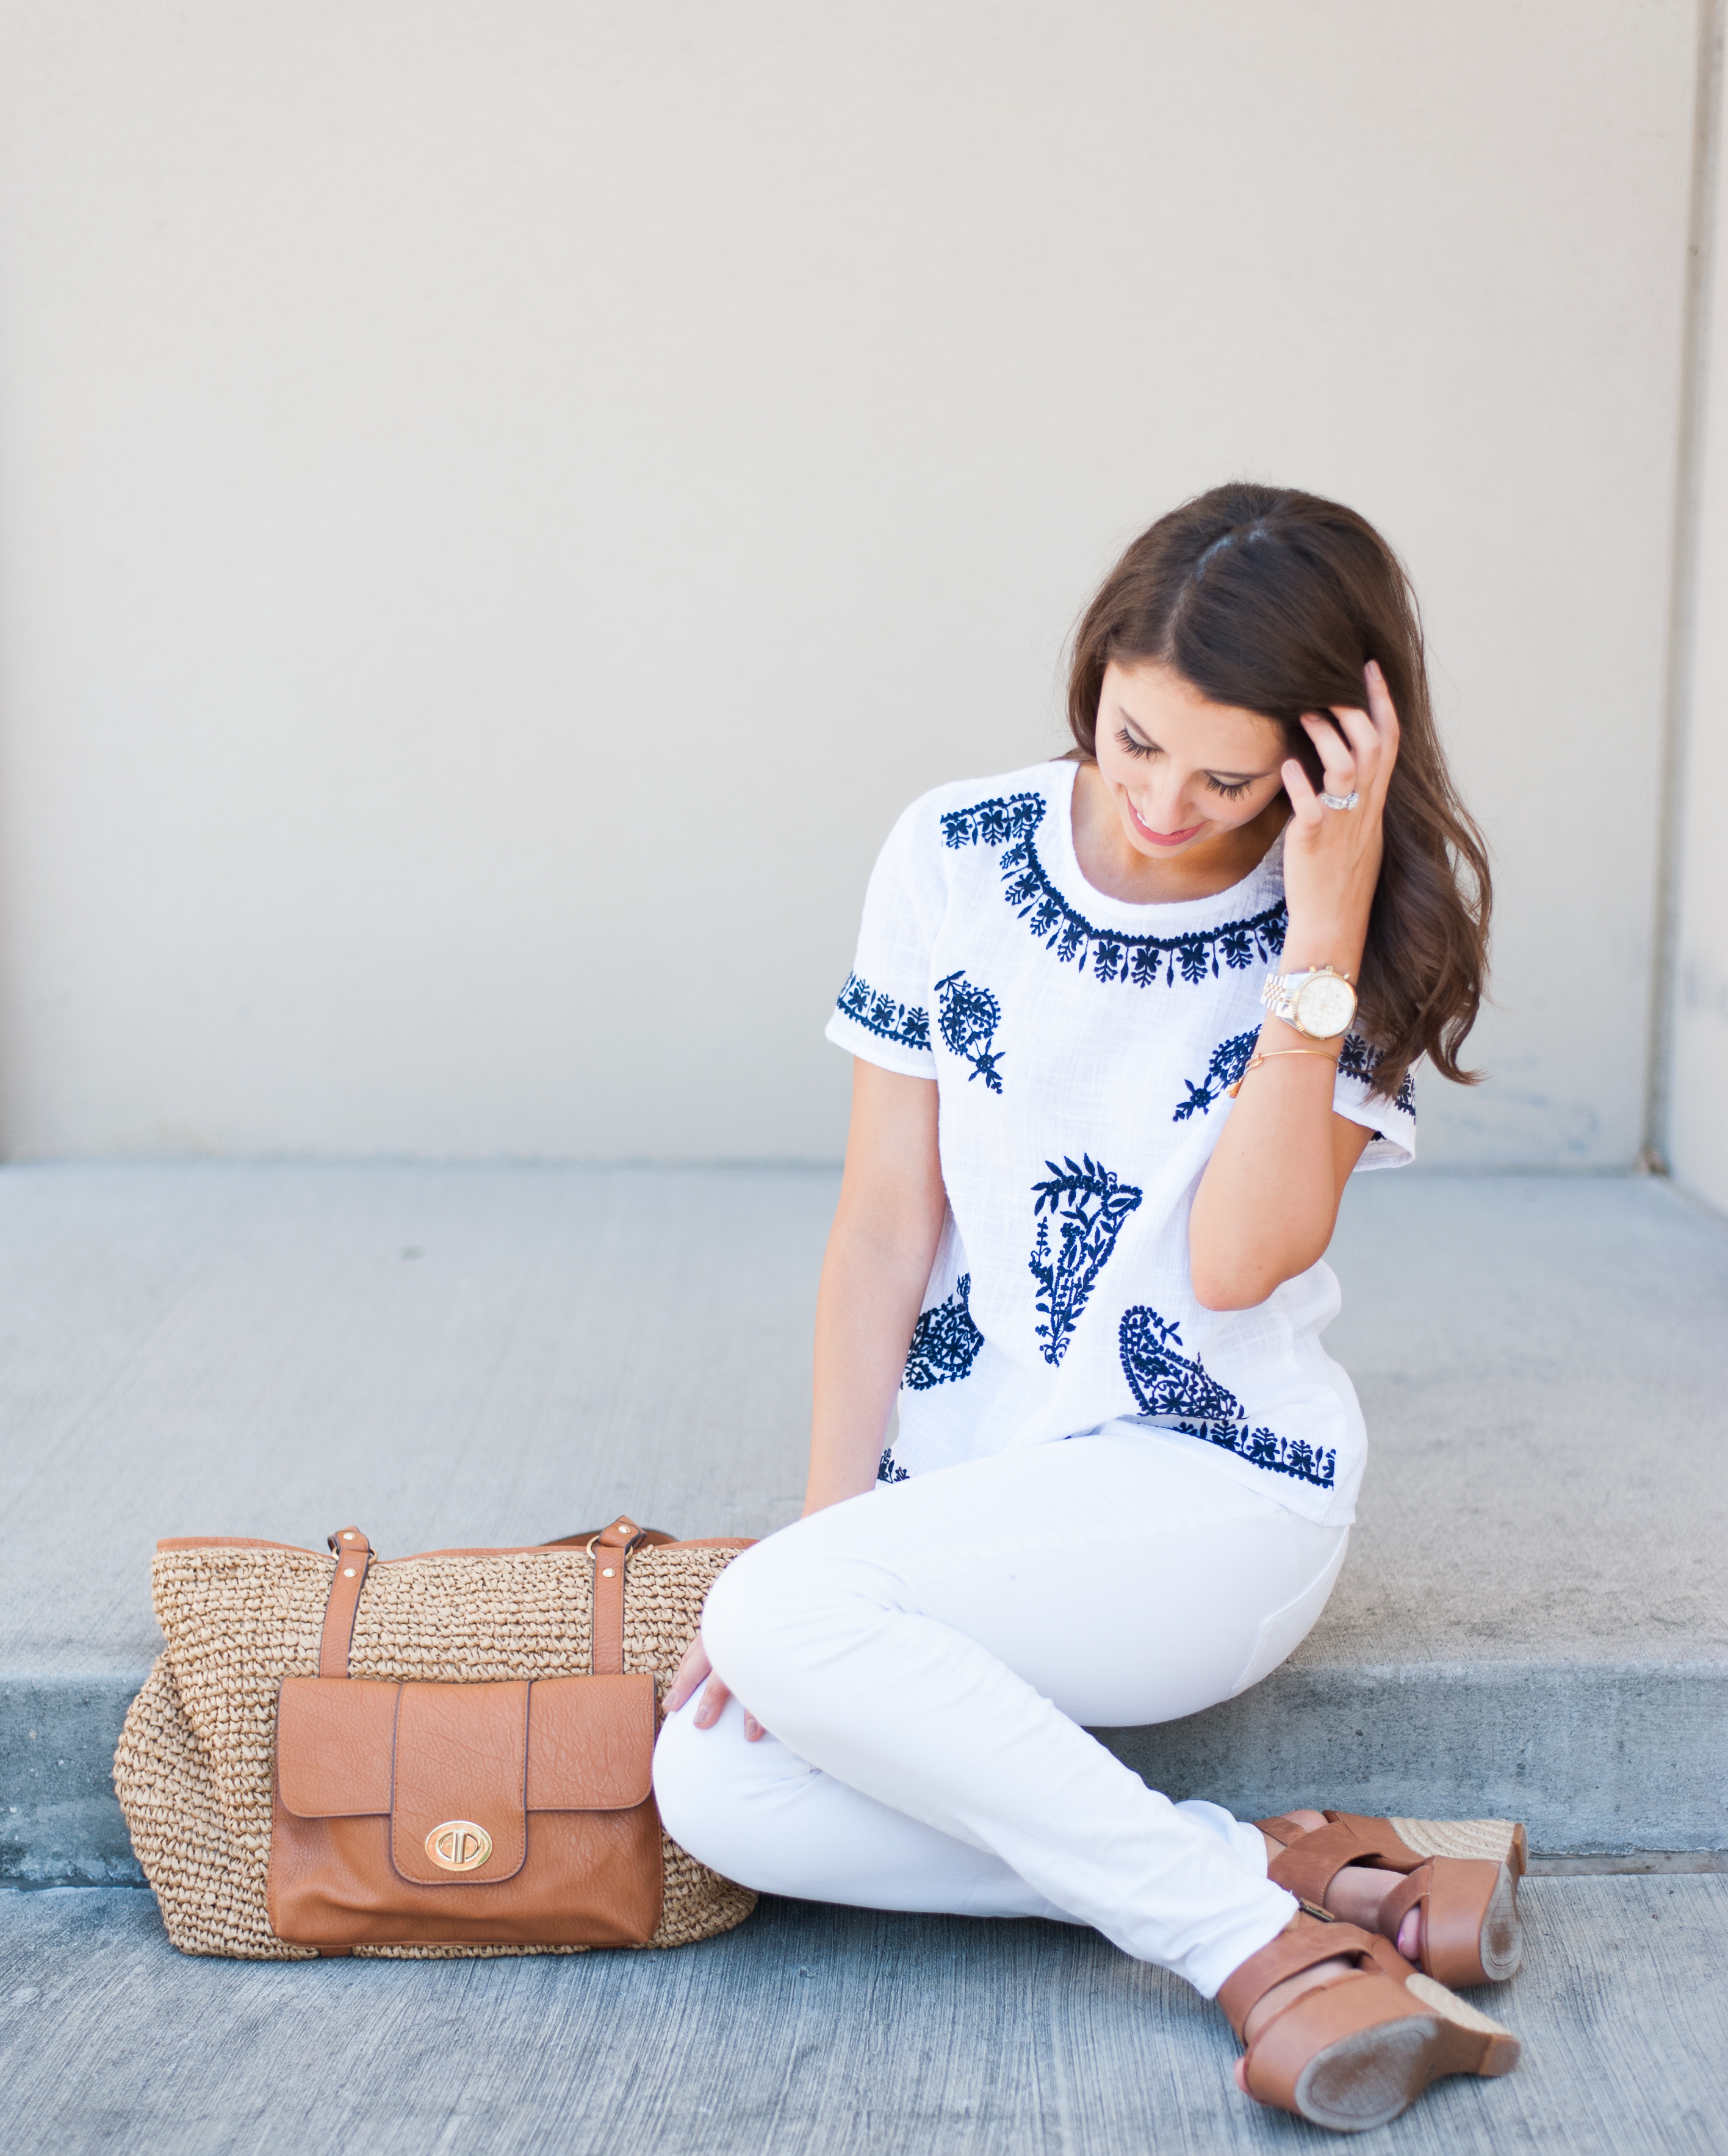 Dress Up Buttercup // A Houston-based fashion and inspiration blog developed to daily inspire your own personal style by Dede Raad | EMBROIDERED